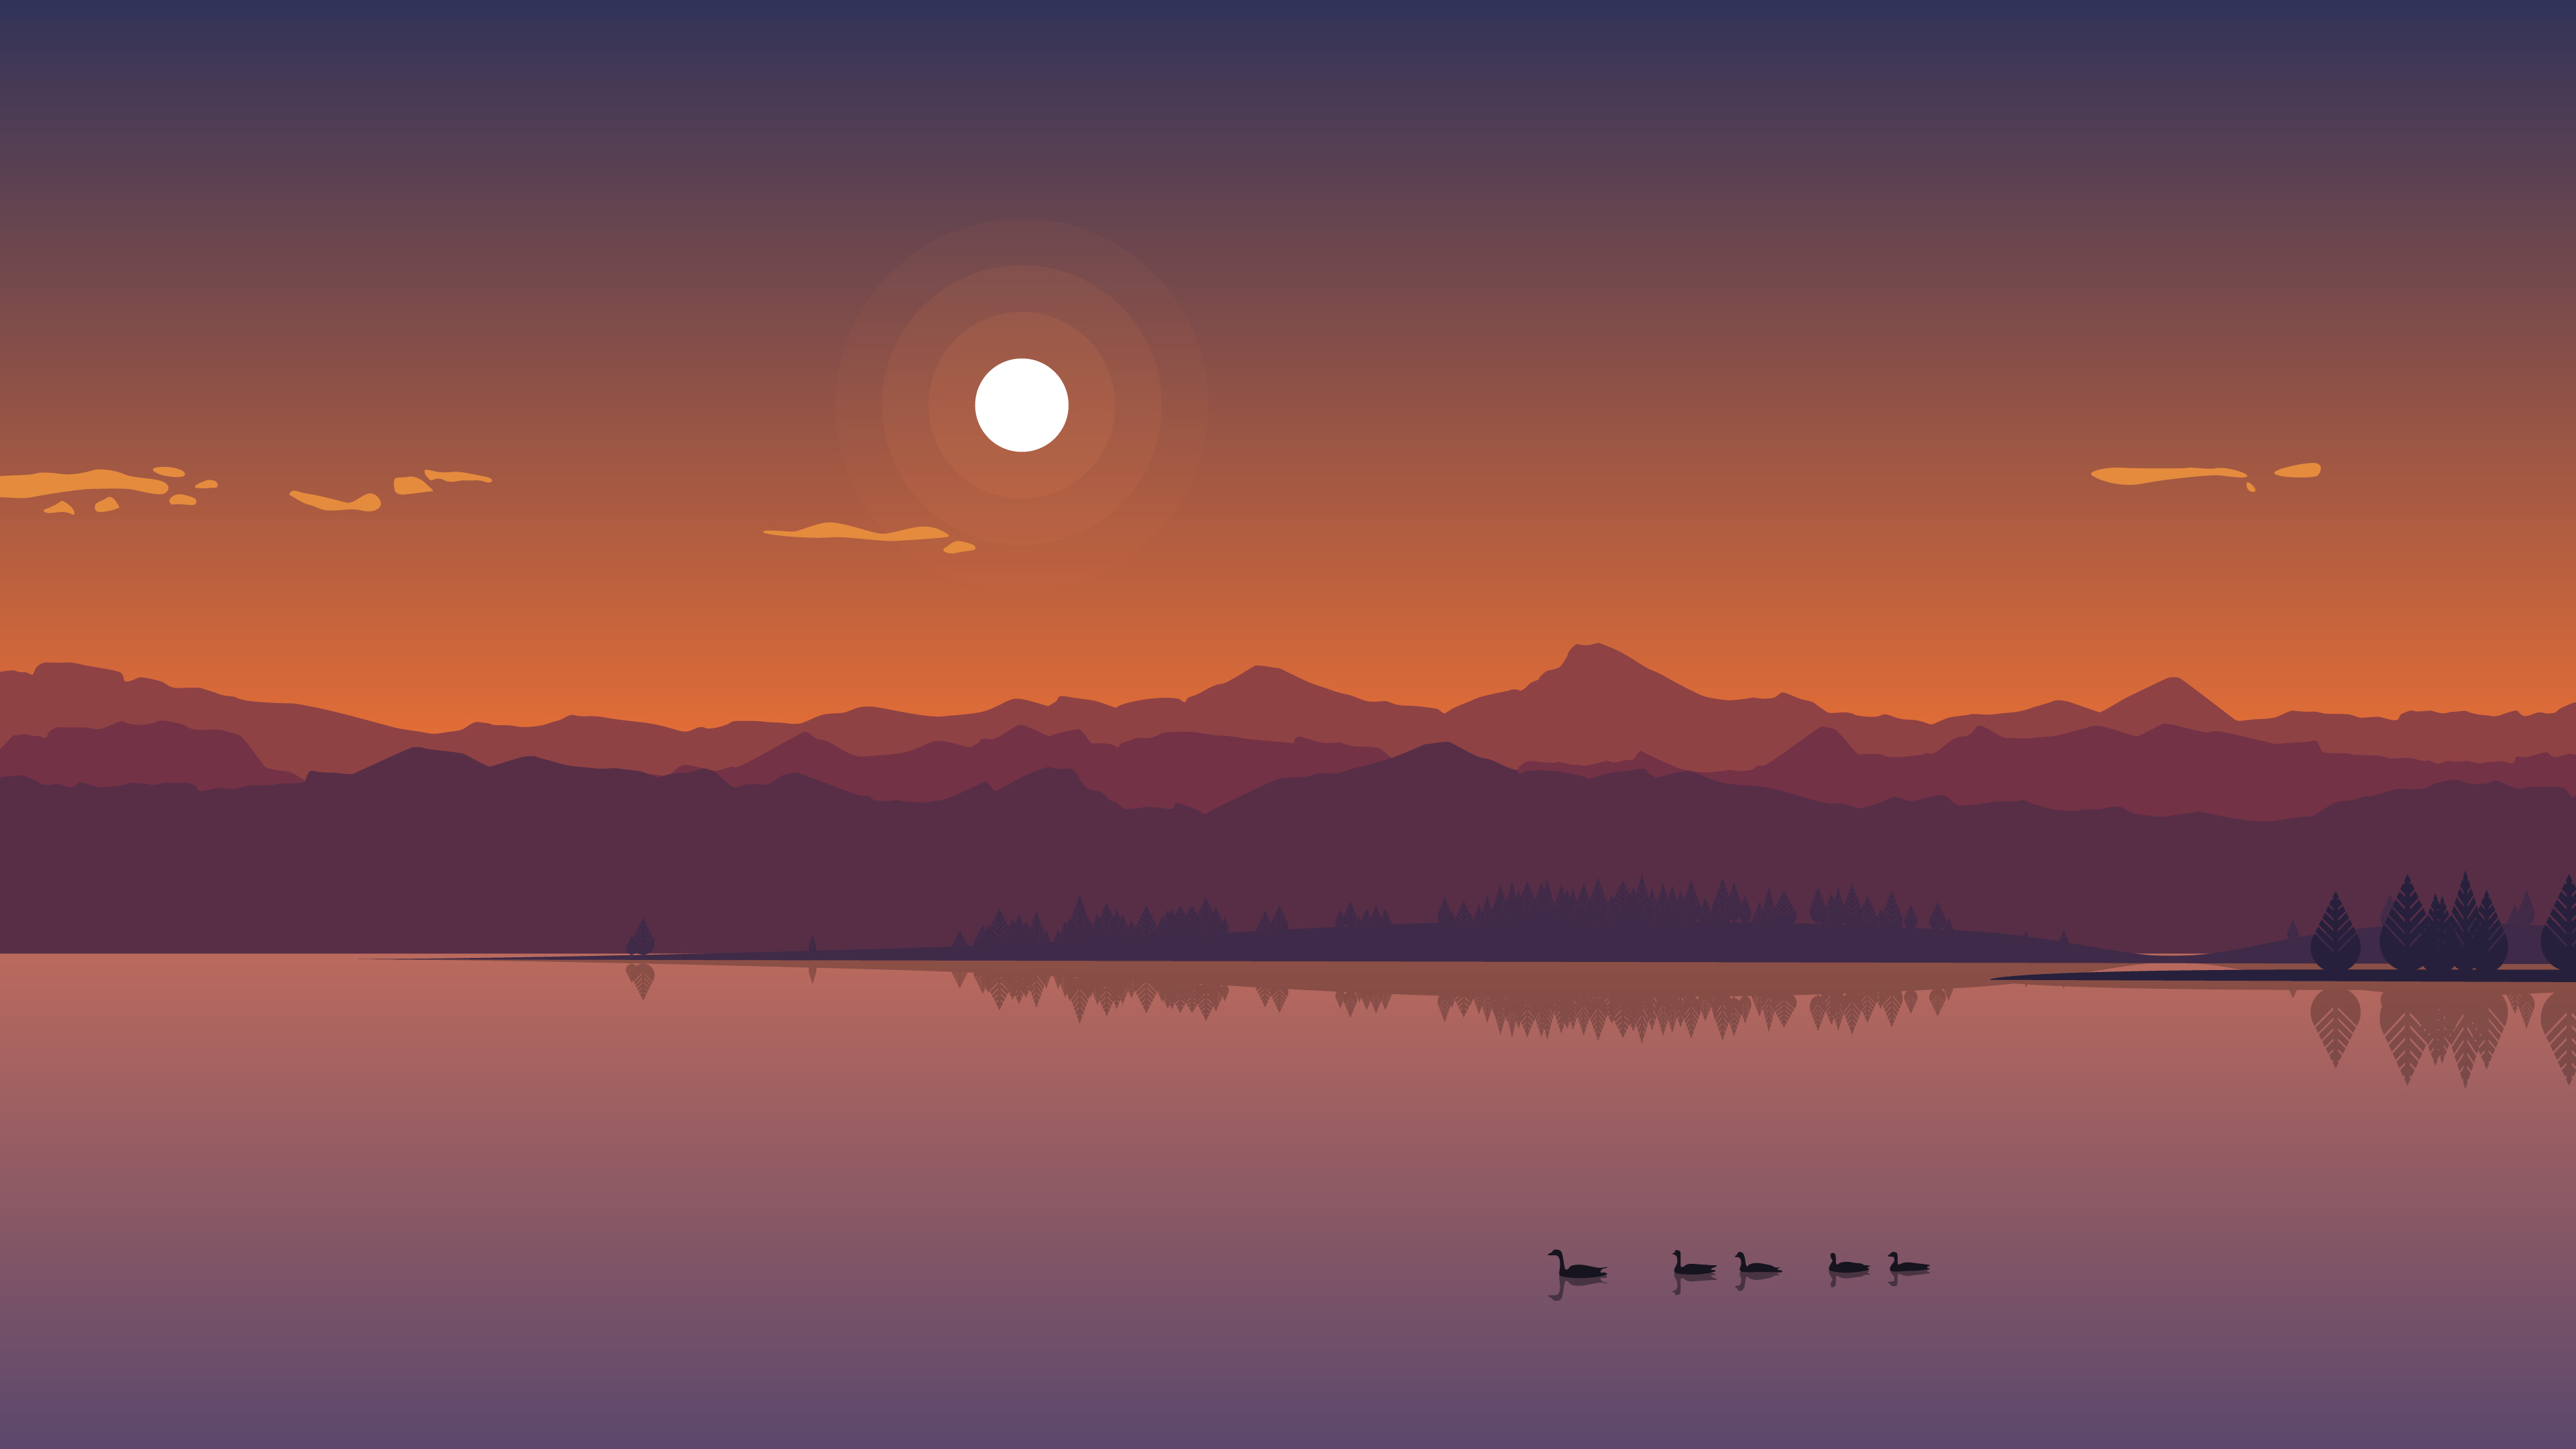 Download Pubg Minimalist Pophead 7680x4320 Resolution: Download Minimal Lake Sunset 5120x2880 Resolution, HD 4K